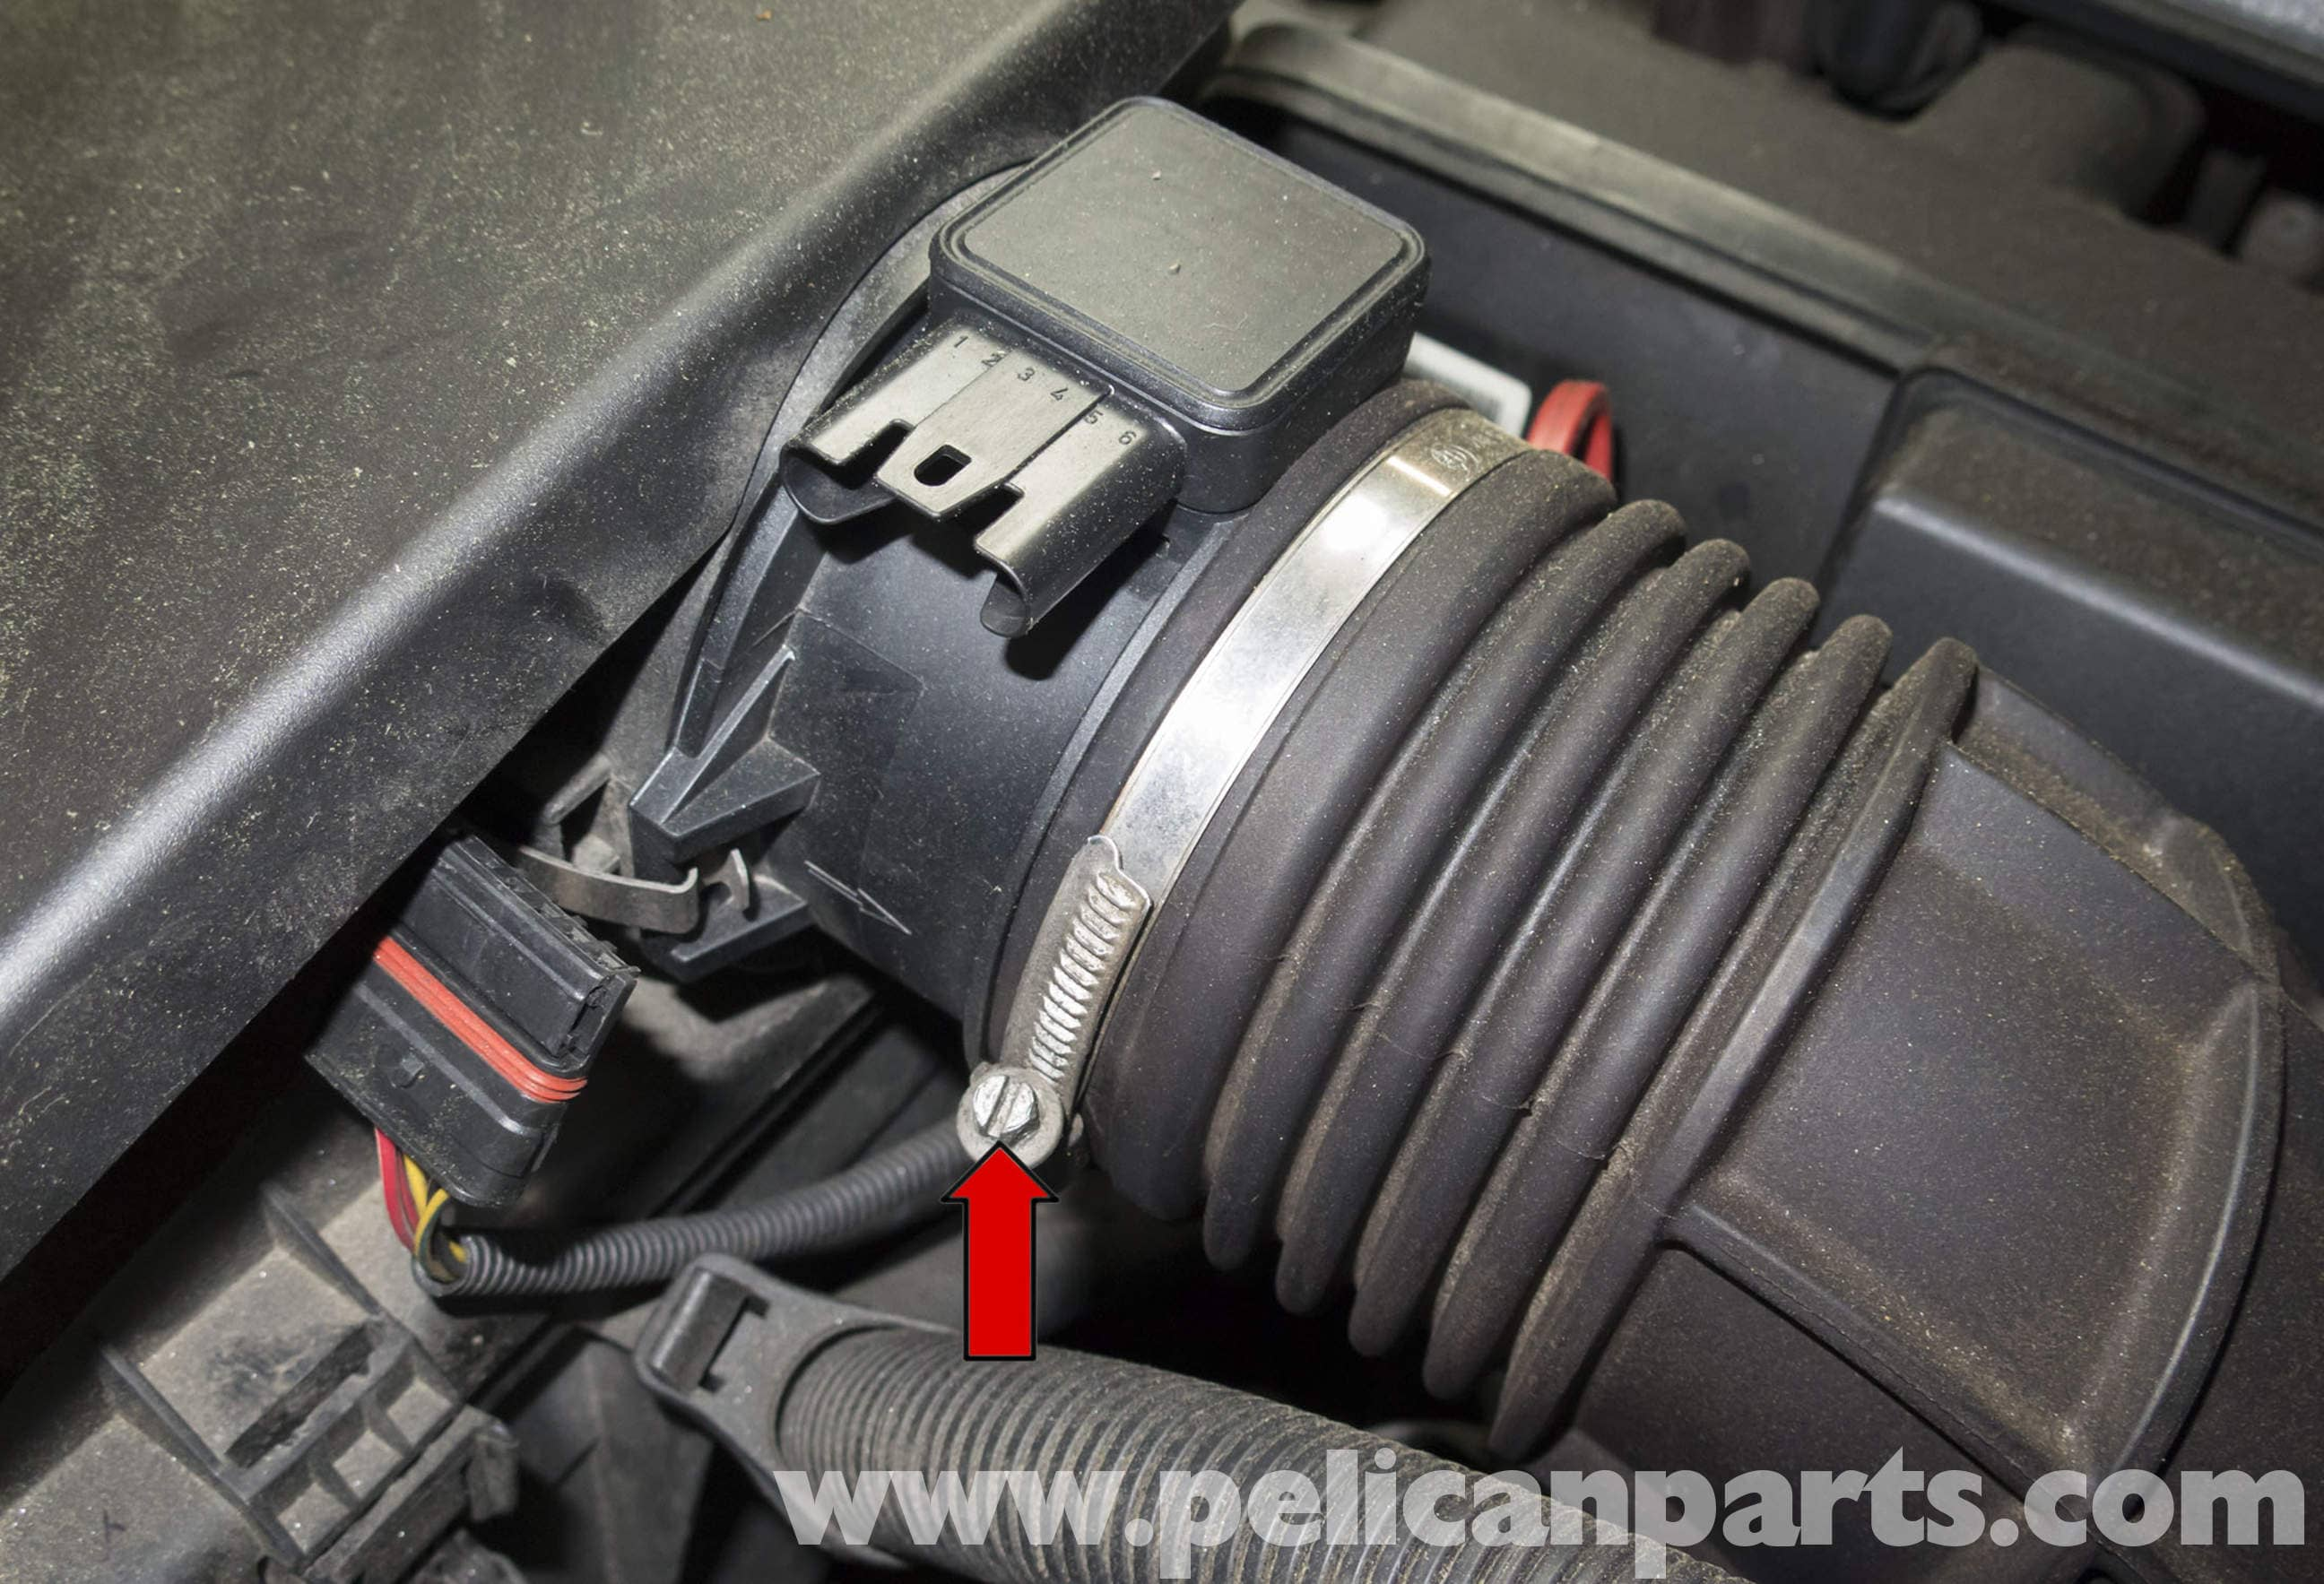 Pelican Parts Technical Article - BMW-X3 - Mass Air Flow